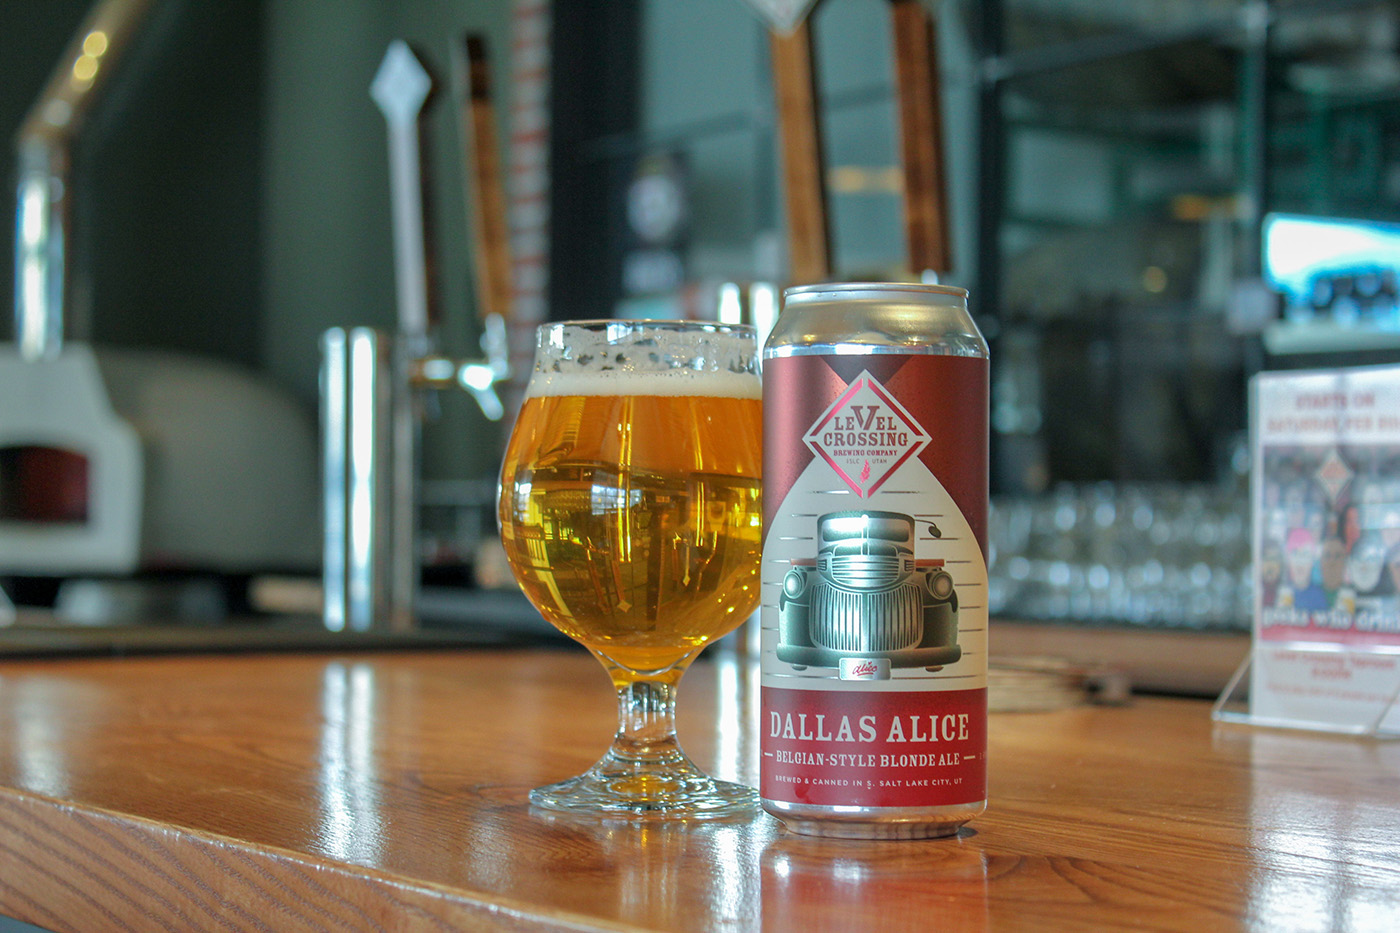 Level Crossing Brewing's Dallas Alice is a Belgian-style blonde ale is a beer with big flavors. At 6.2% ABV, this is the ultimate springtime refresher.